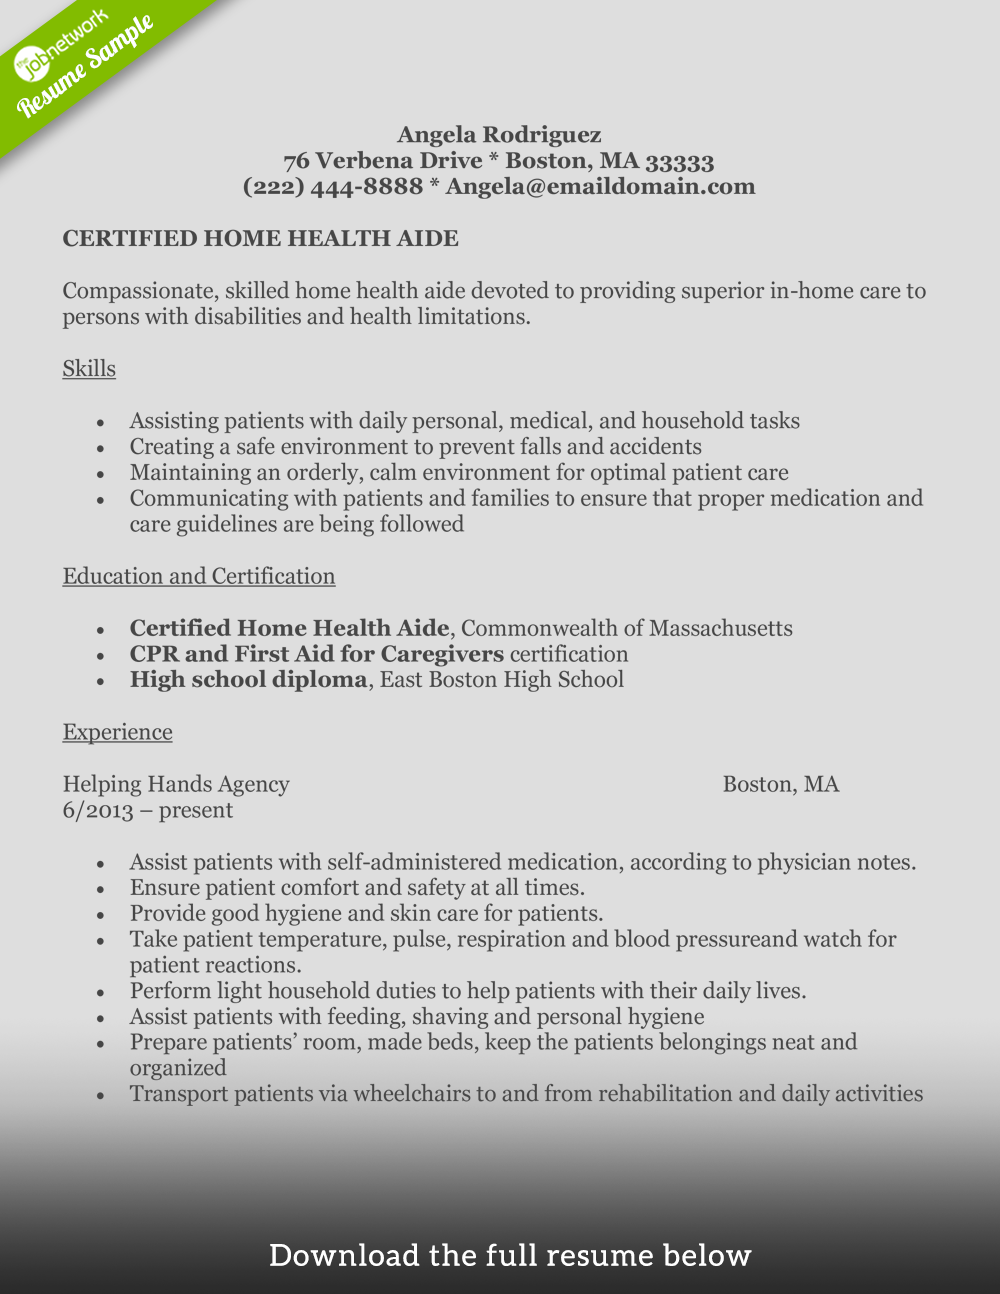 How to Write a Perfect Home Health Aide Resume (Examples Included)